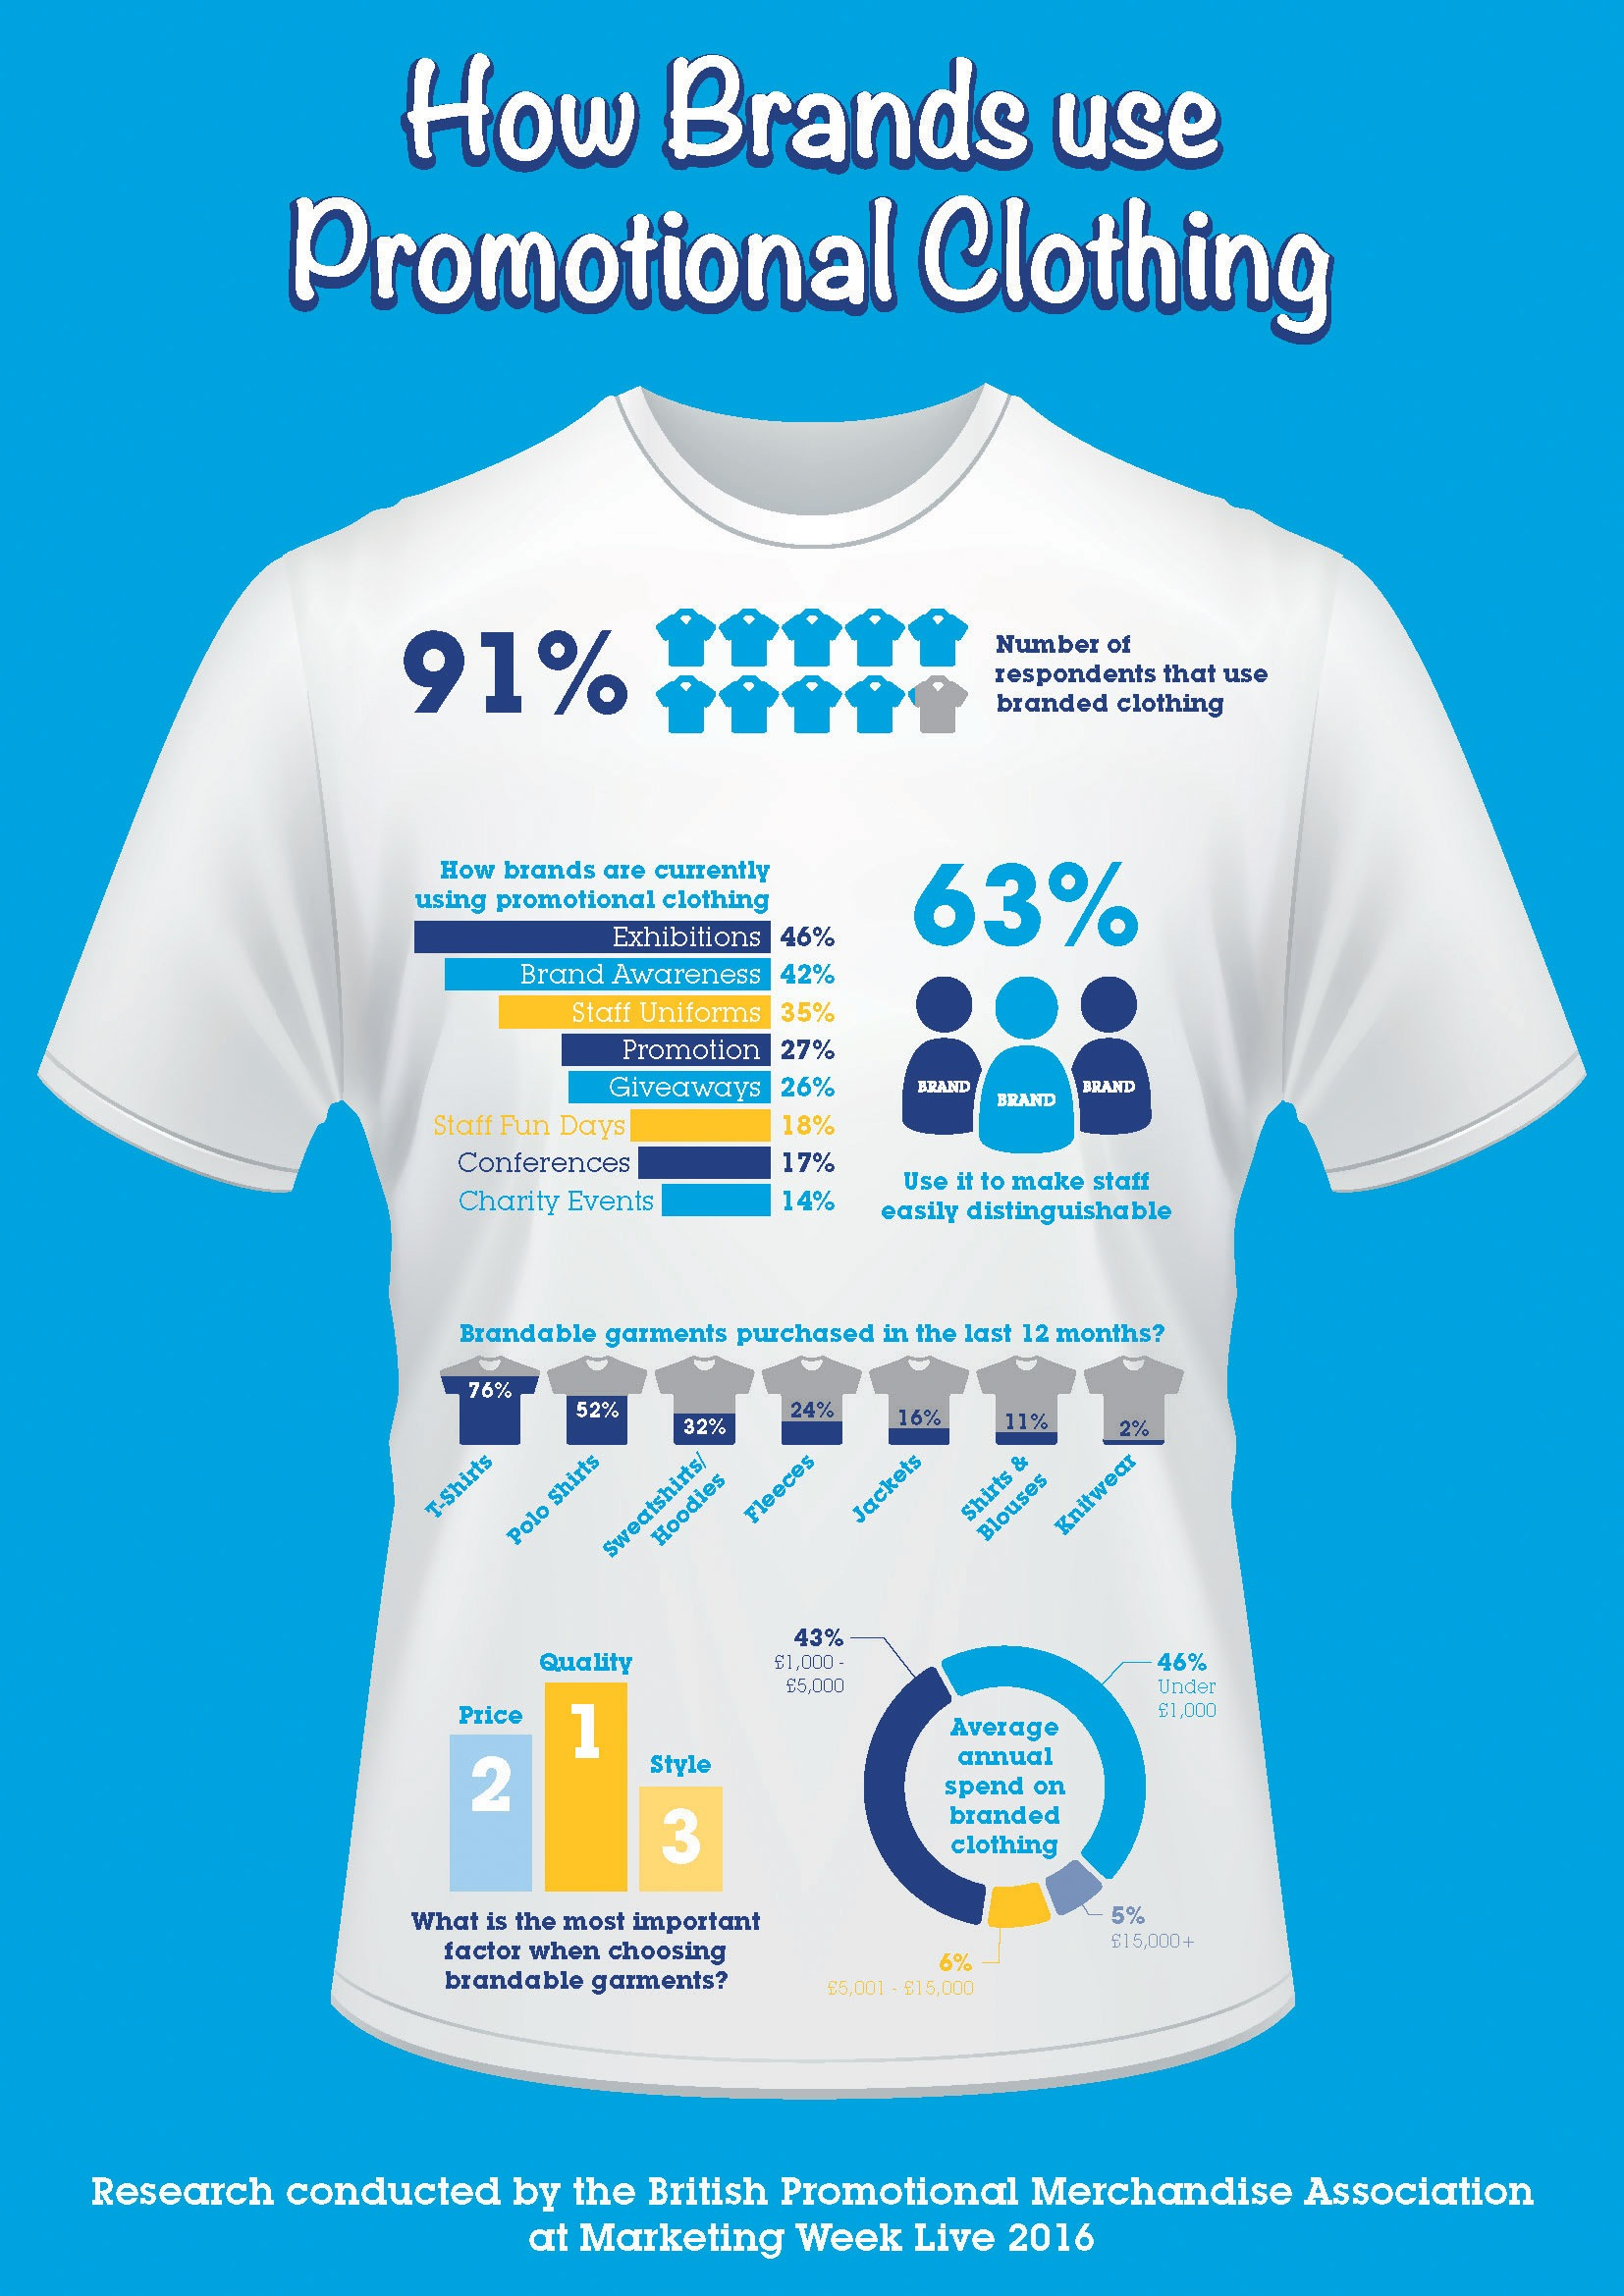 How brands use promotional clothing